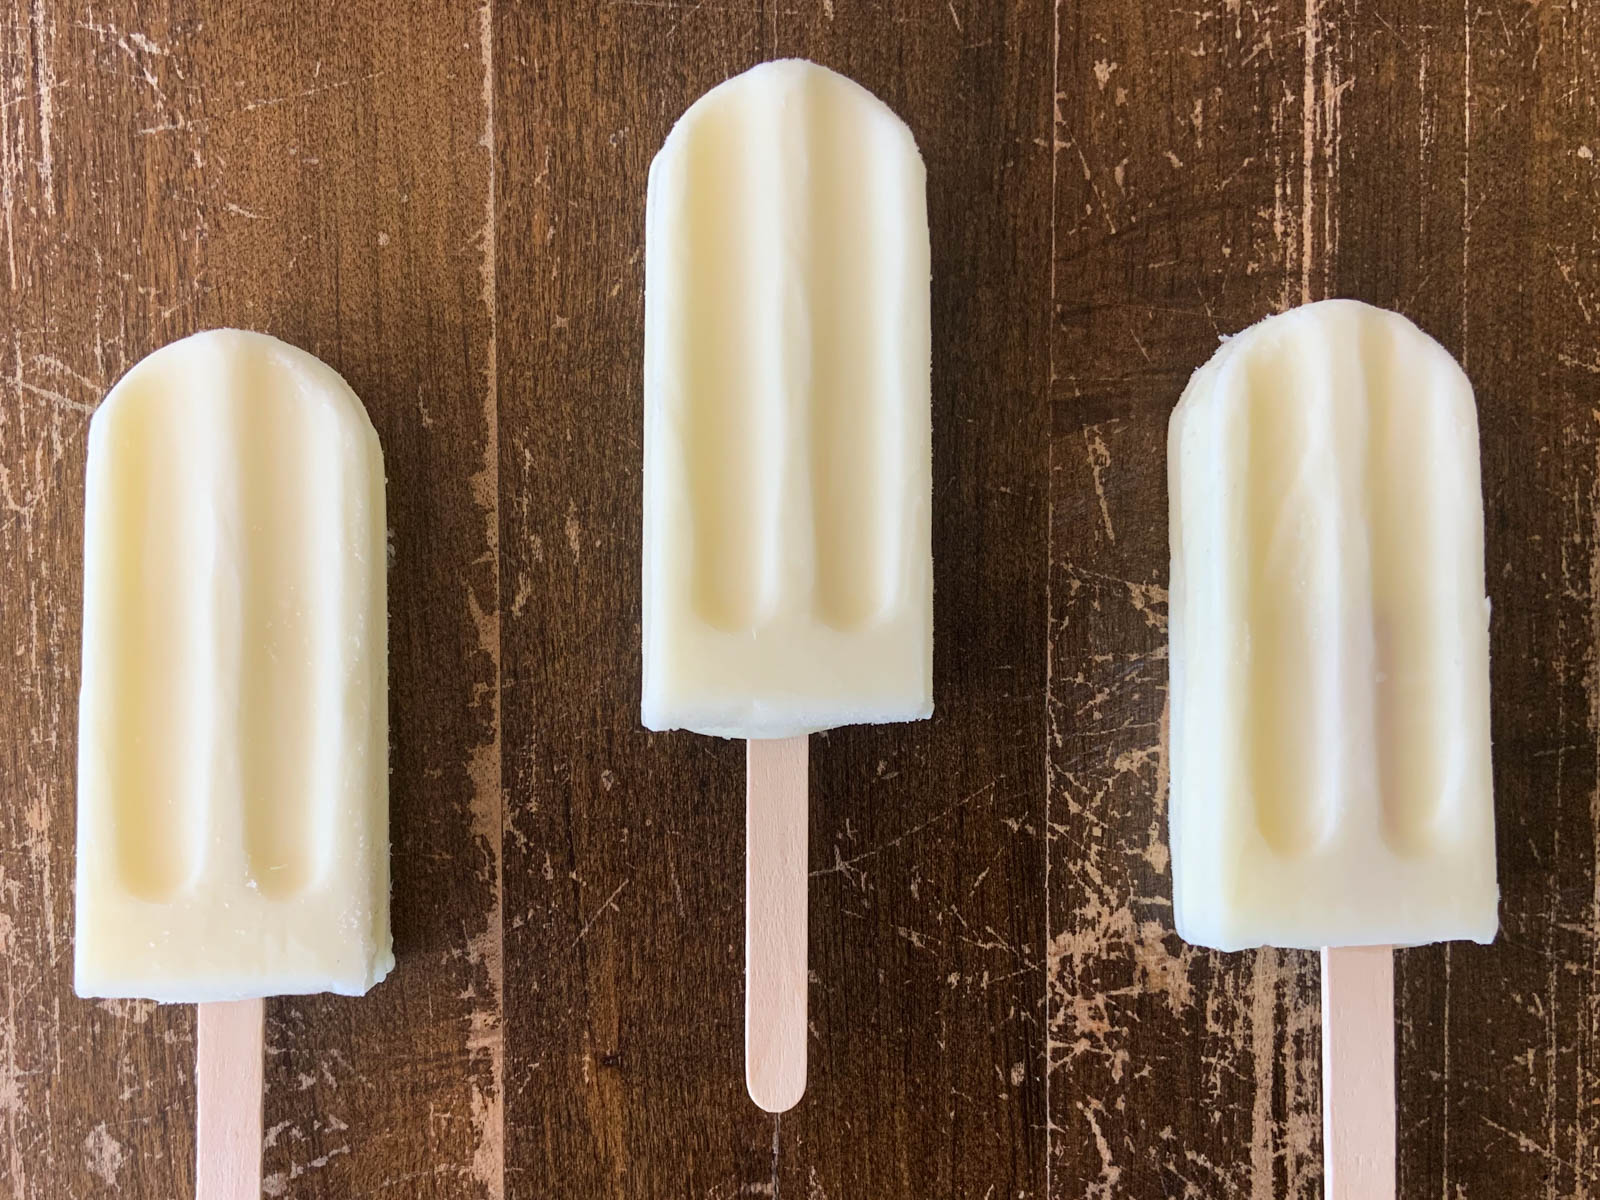 Poptimism Provel Cheese Pops